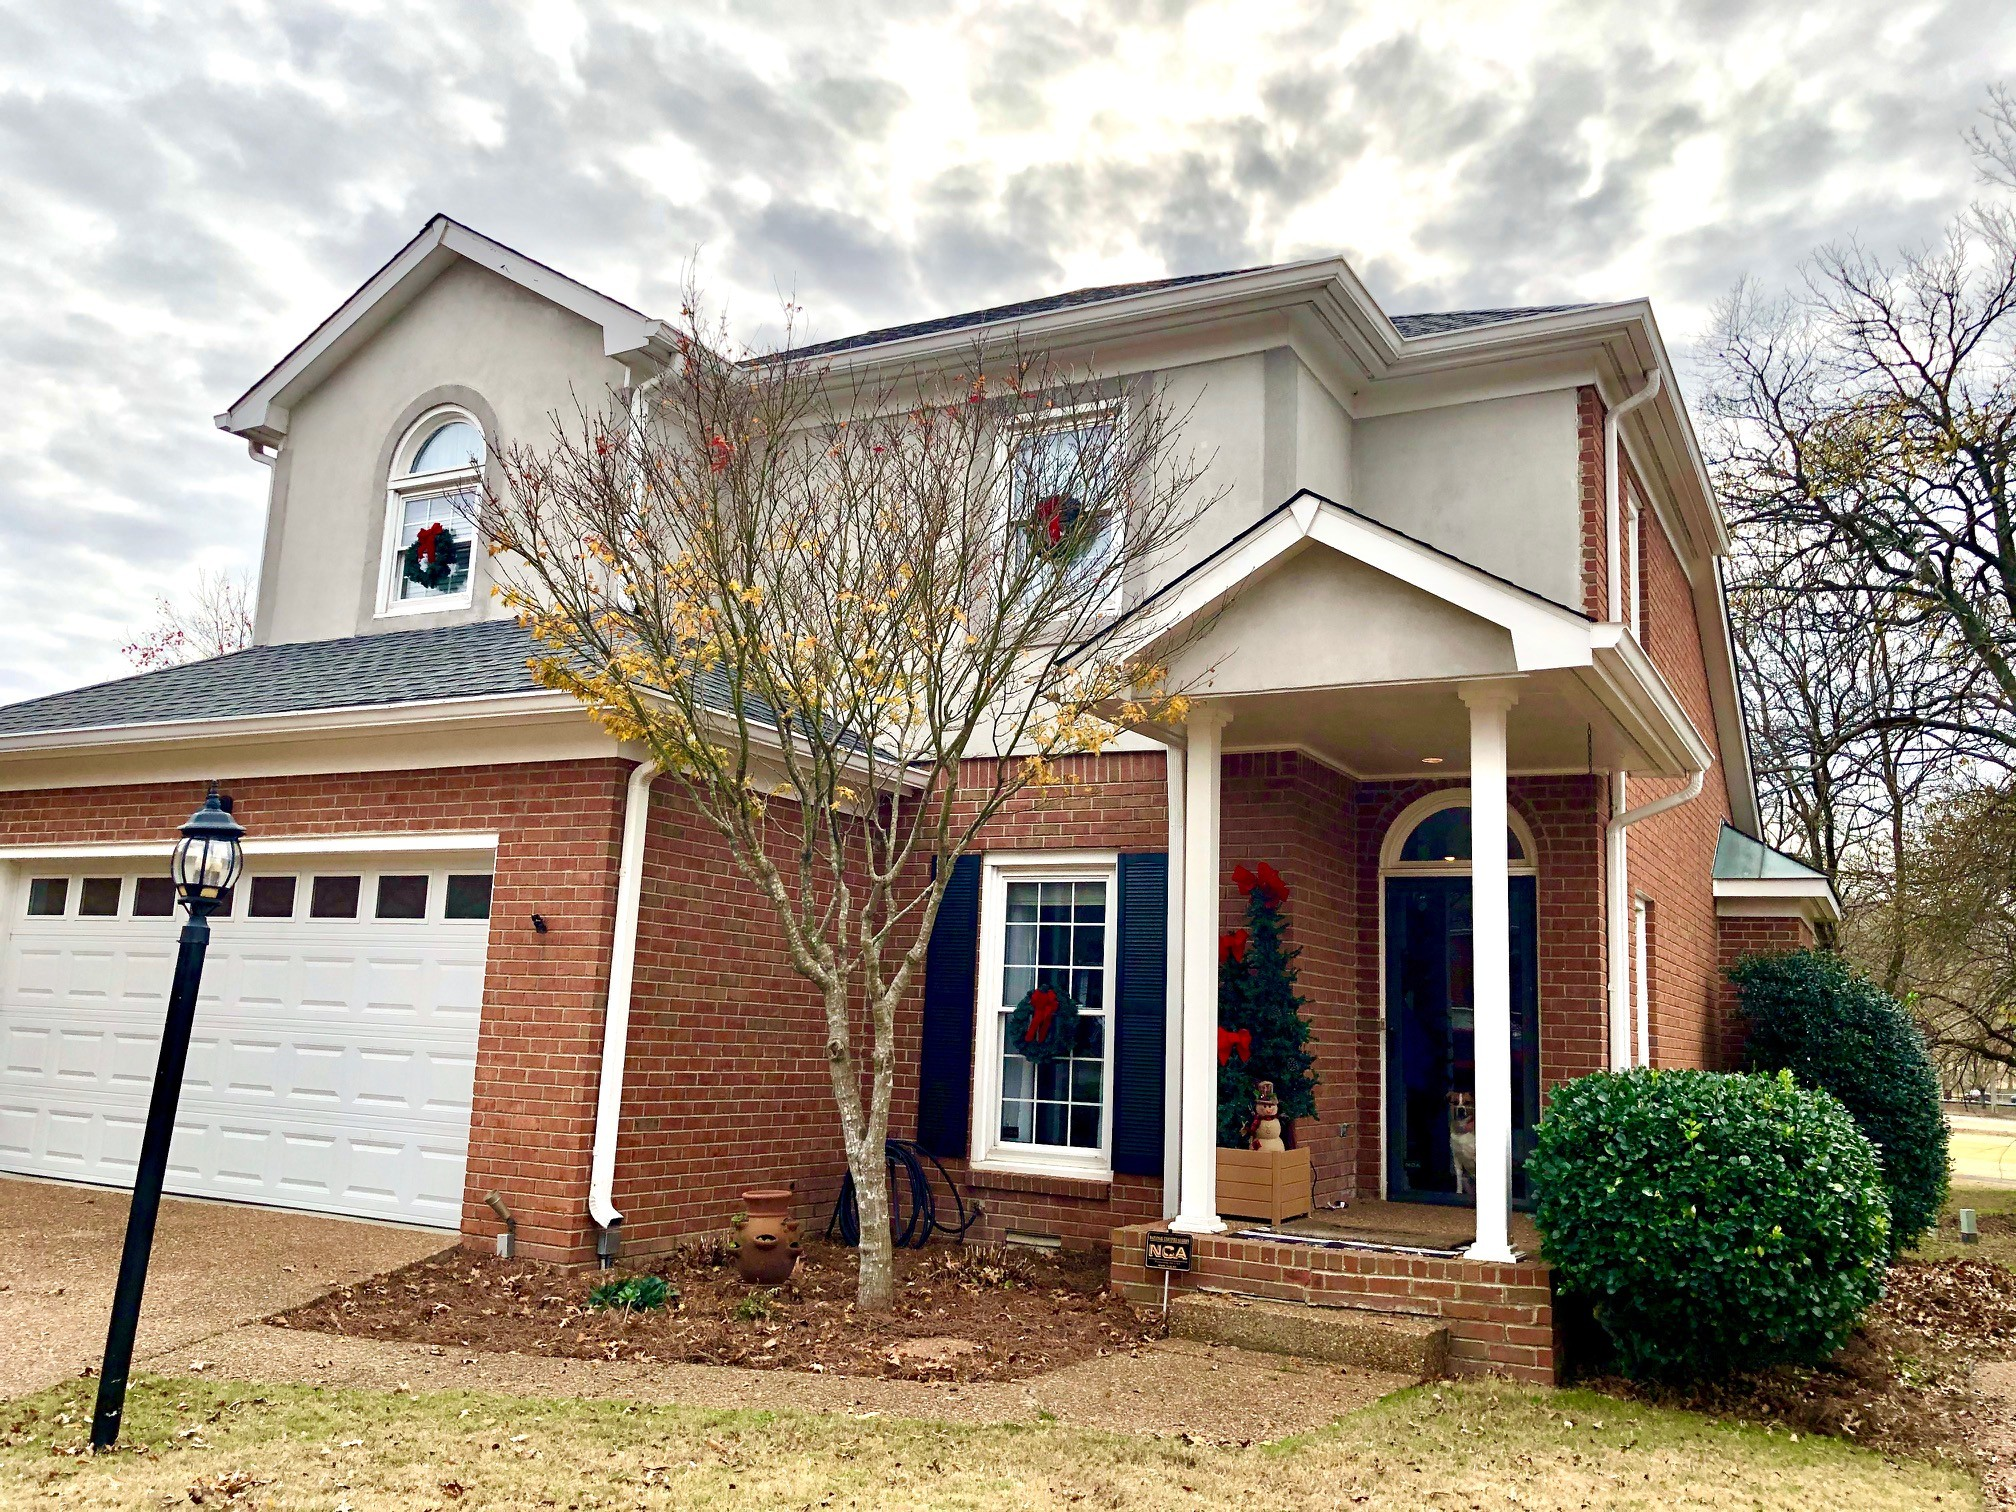 Open Sunday 2-4 pm.  Amazing 3 bedroom/2.5 bath 2293 sq. ft. on the golf course in Temple Hills!  First floor master bedroom, beautiful  updated master bath w/large walk in shower! Vaulted ceiling, fireplace, outdoor firepit, amazing golf course views, hardwood floors on main, fenced yard, cul-de-sac location.  HWT (2019). Sellers need a quick 30 day (prior to December 29th) close!  Highly rated Grassland Schools.  Additional Photos coming soon!